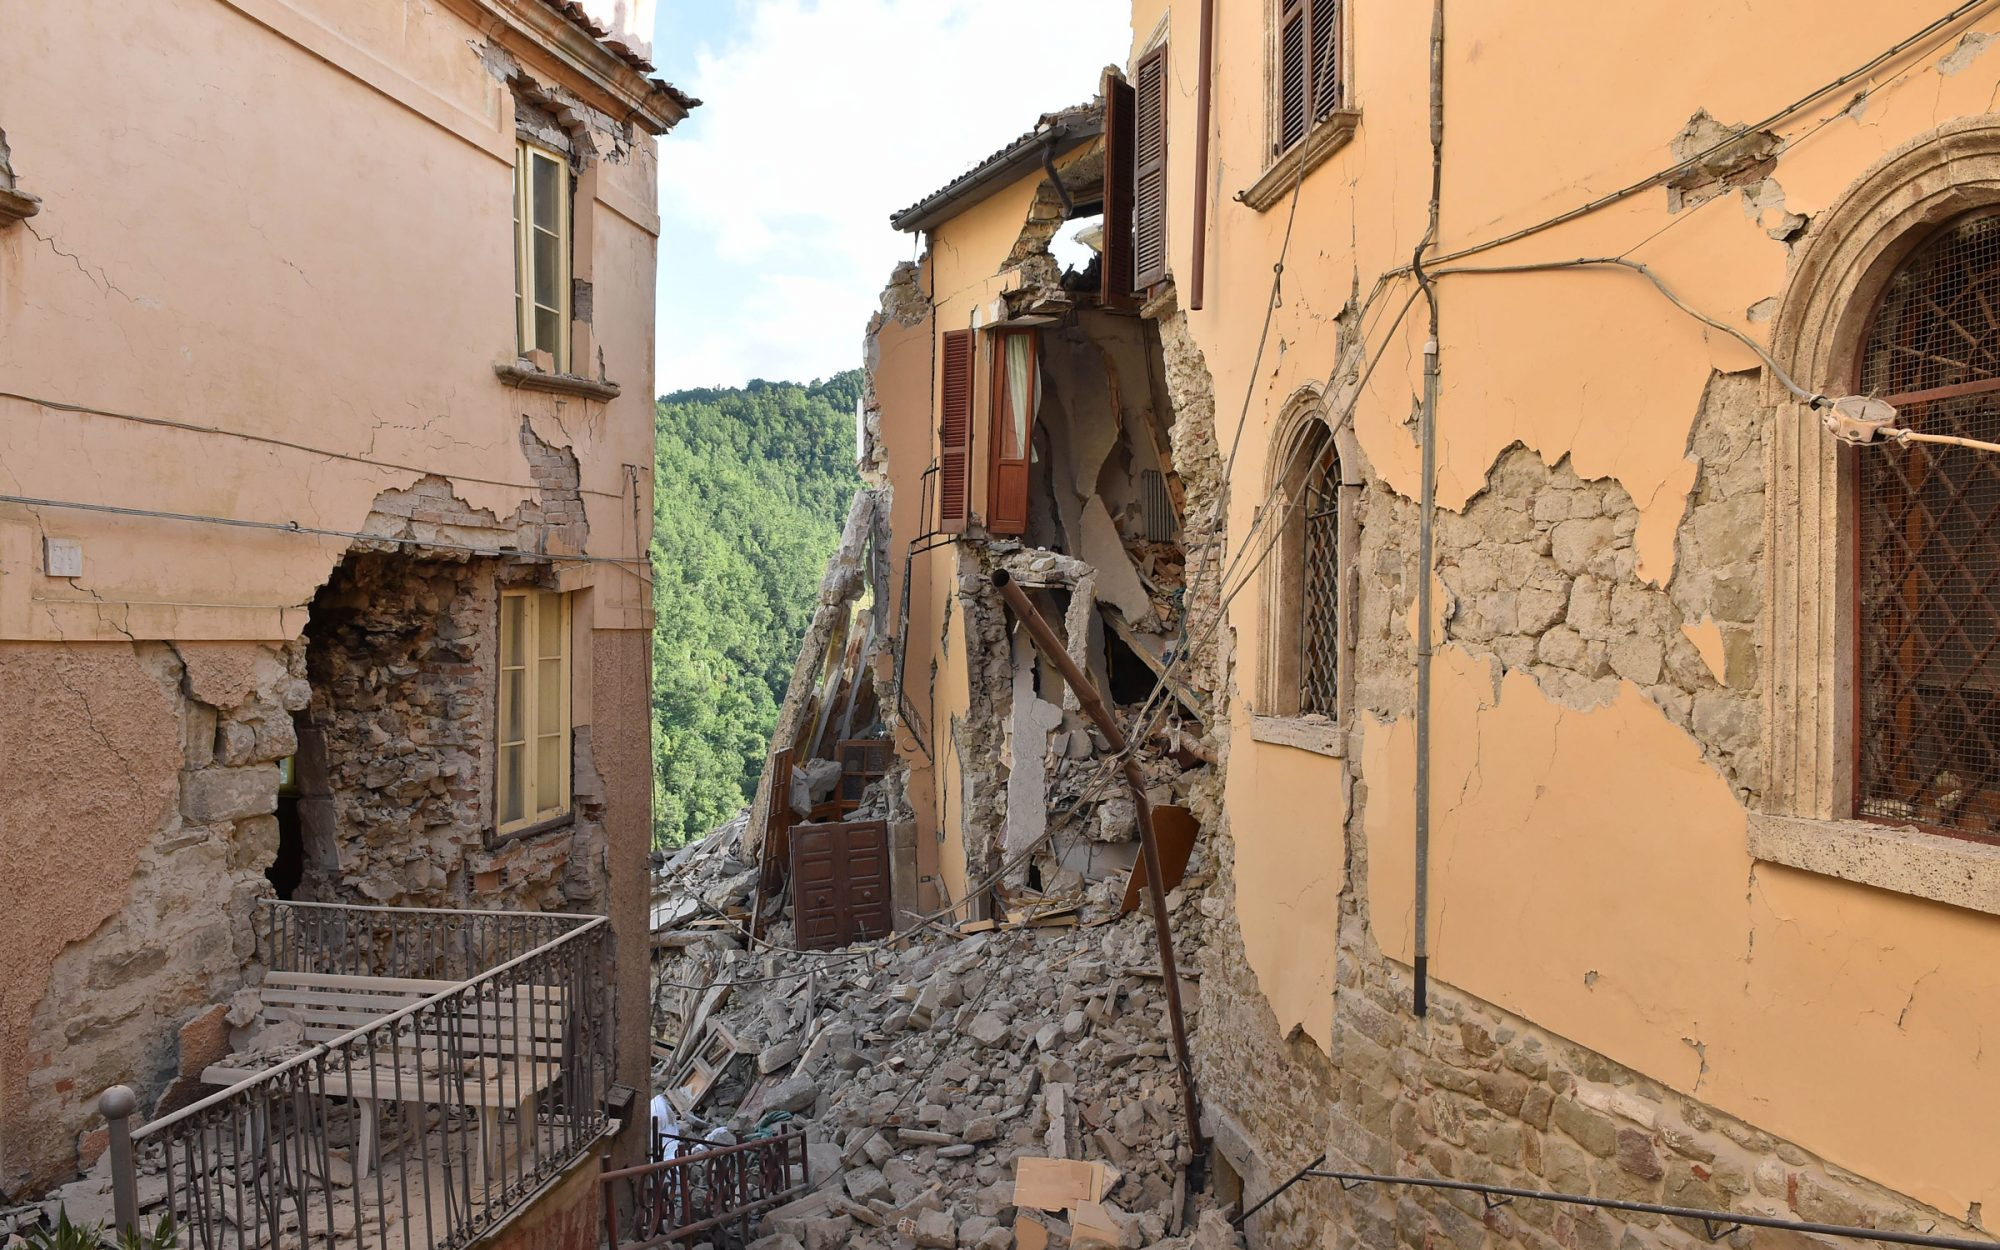 What Travelers Should Know About Italy's Earthquake History